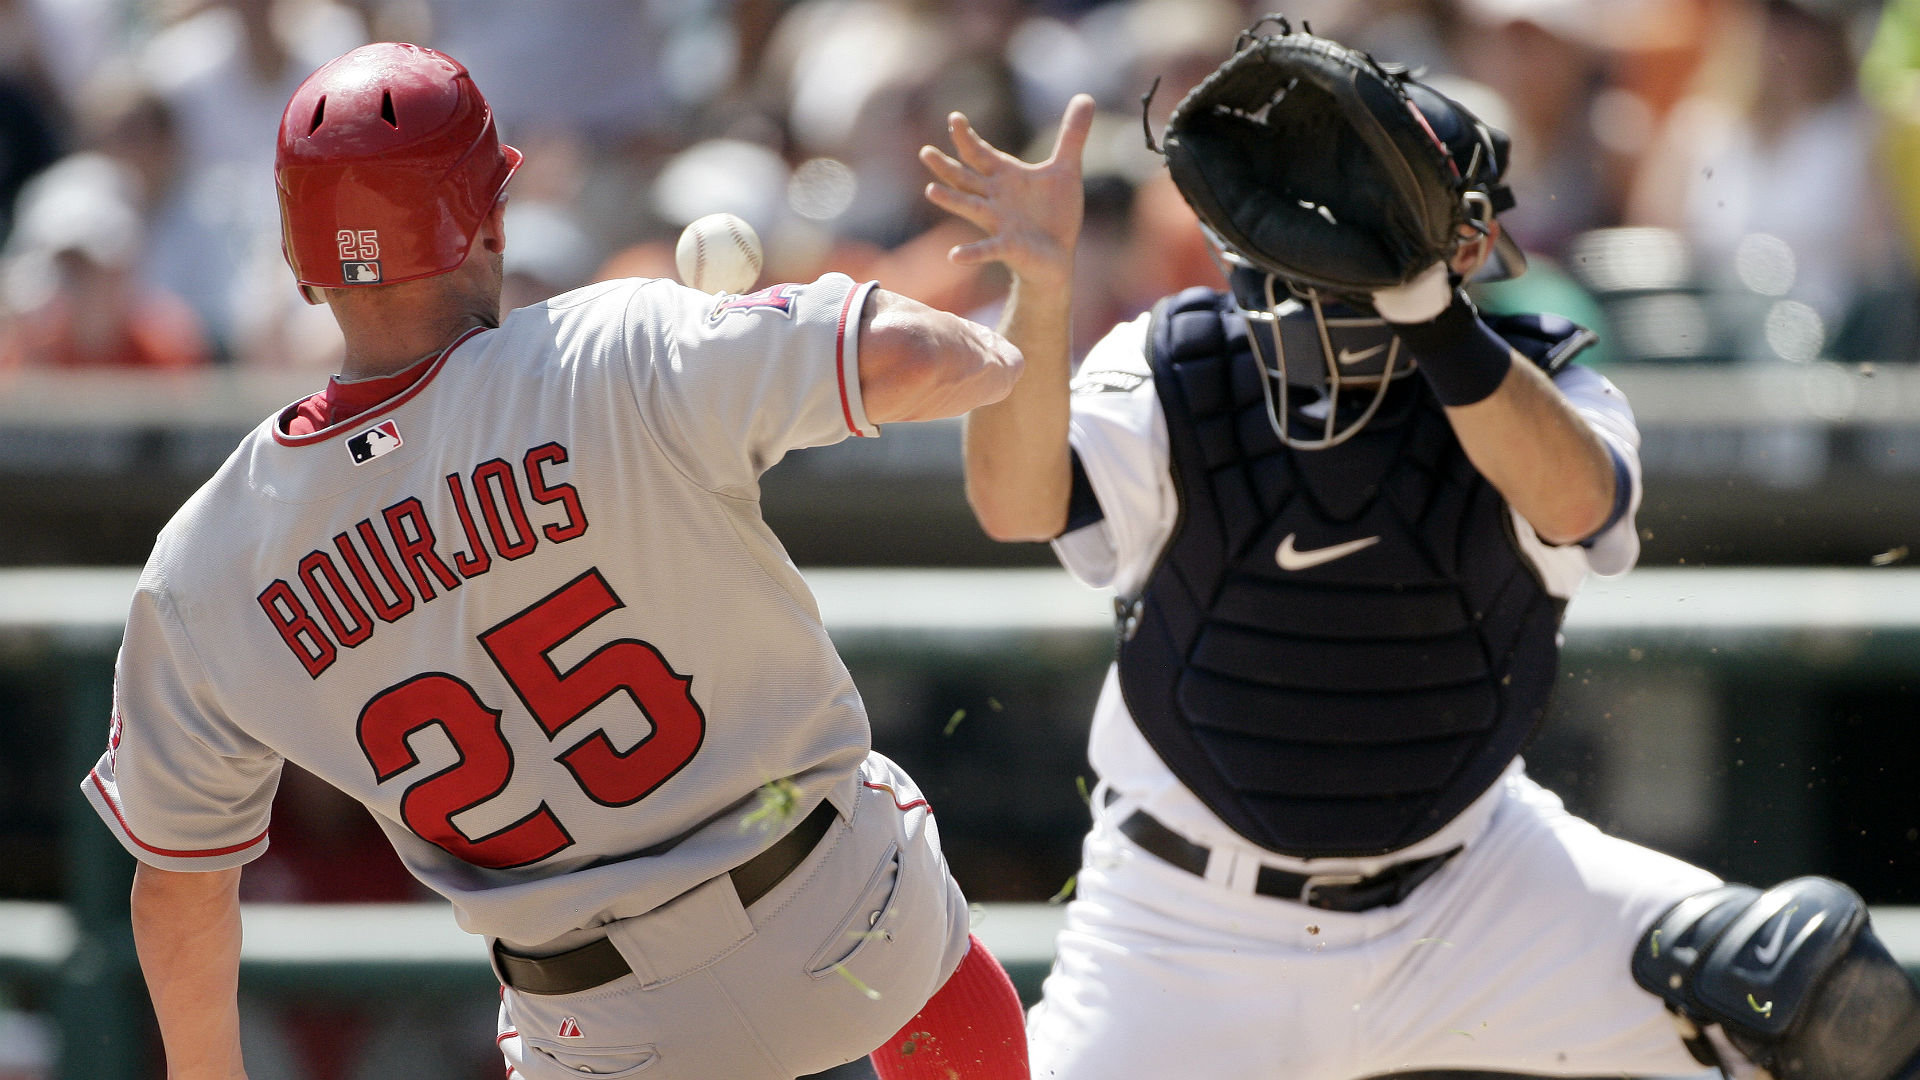 Fantasy Baseball quick hits: Bourjos-Freese trade